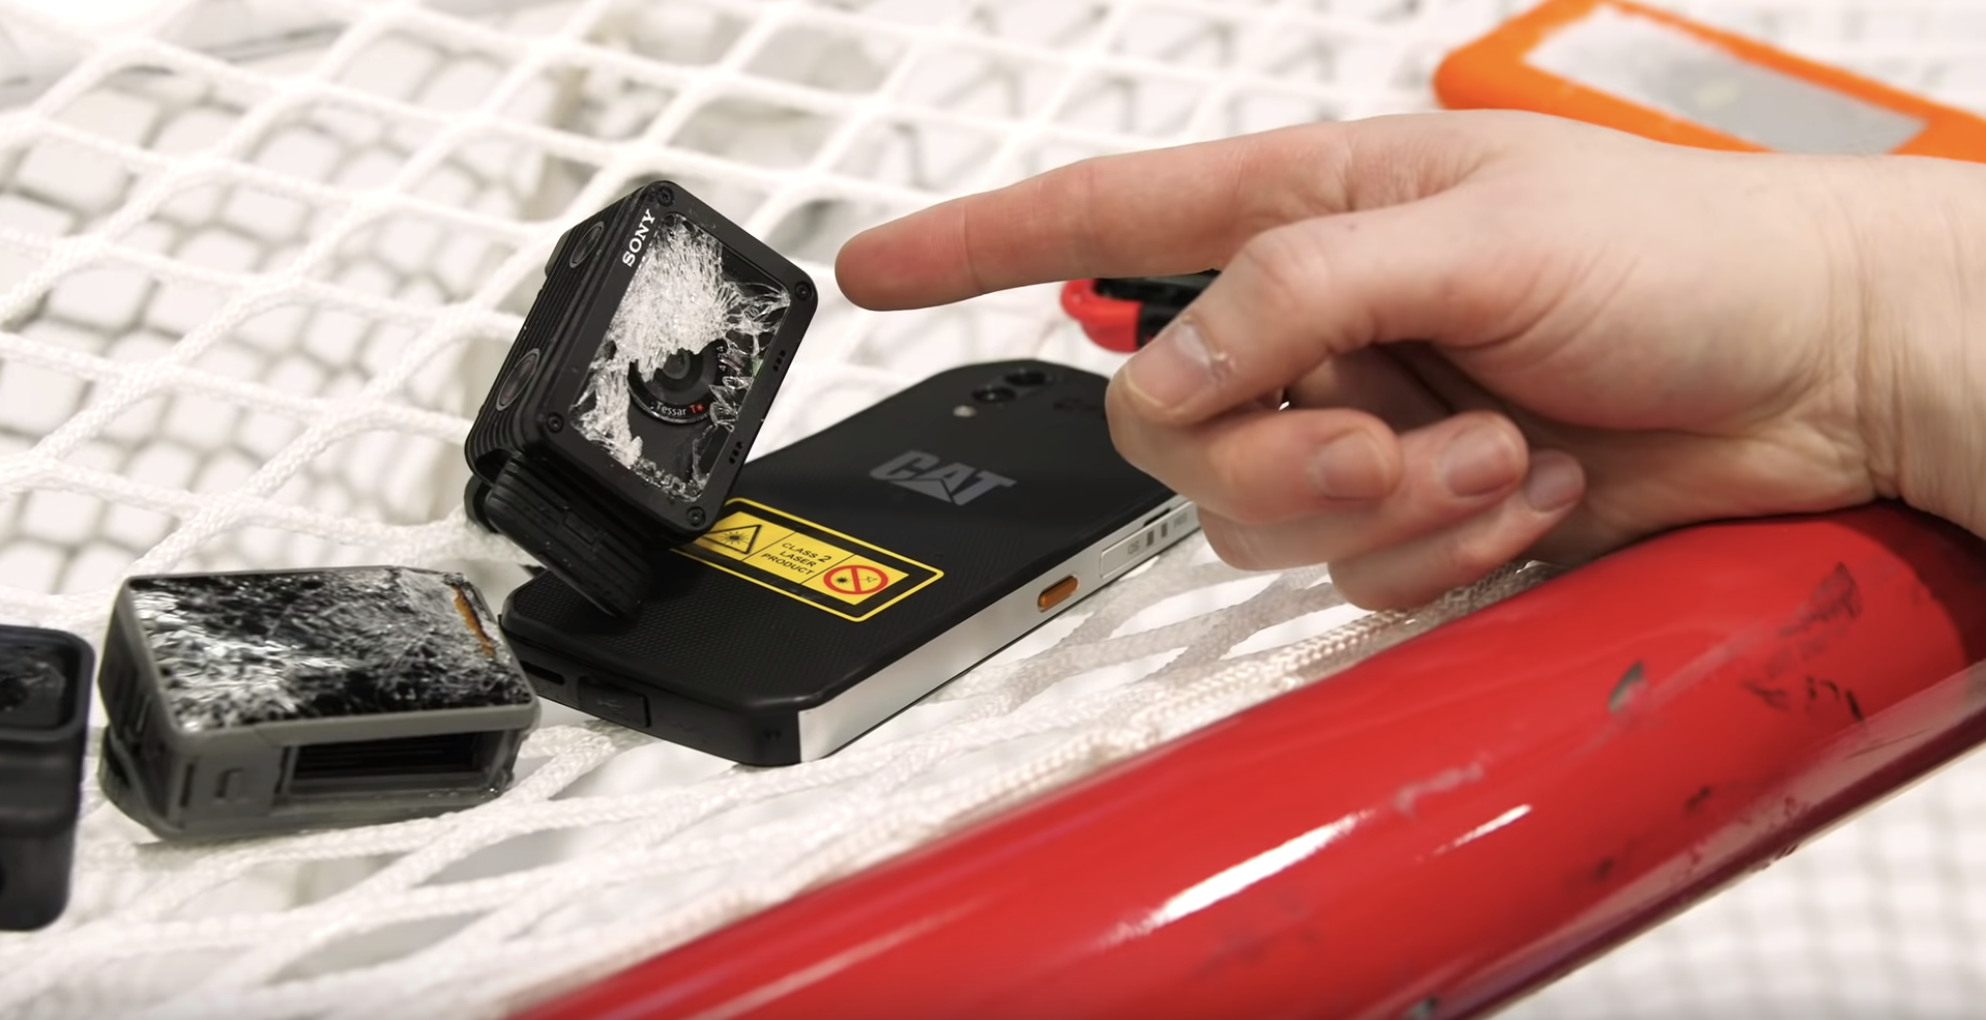 Jeff Bakalar puts rugged tech to the test with a heap of slapshots